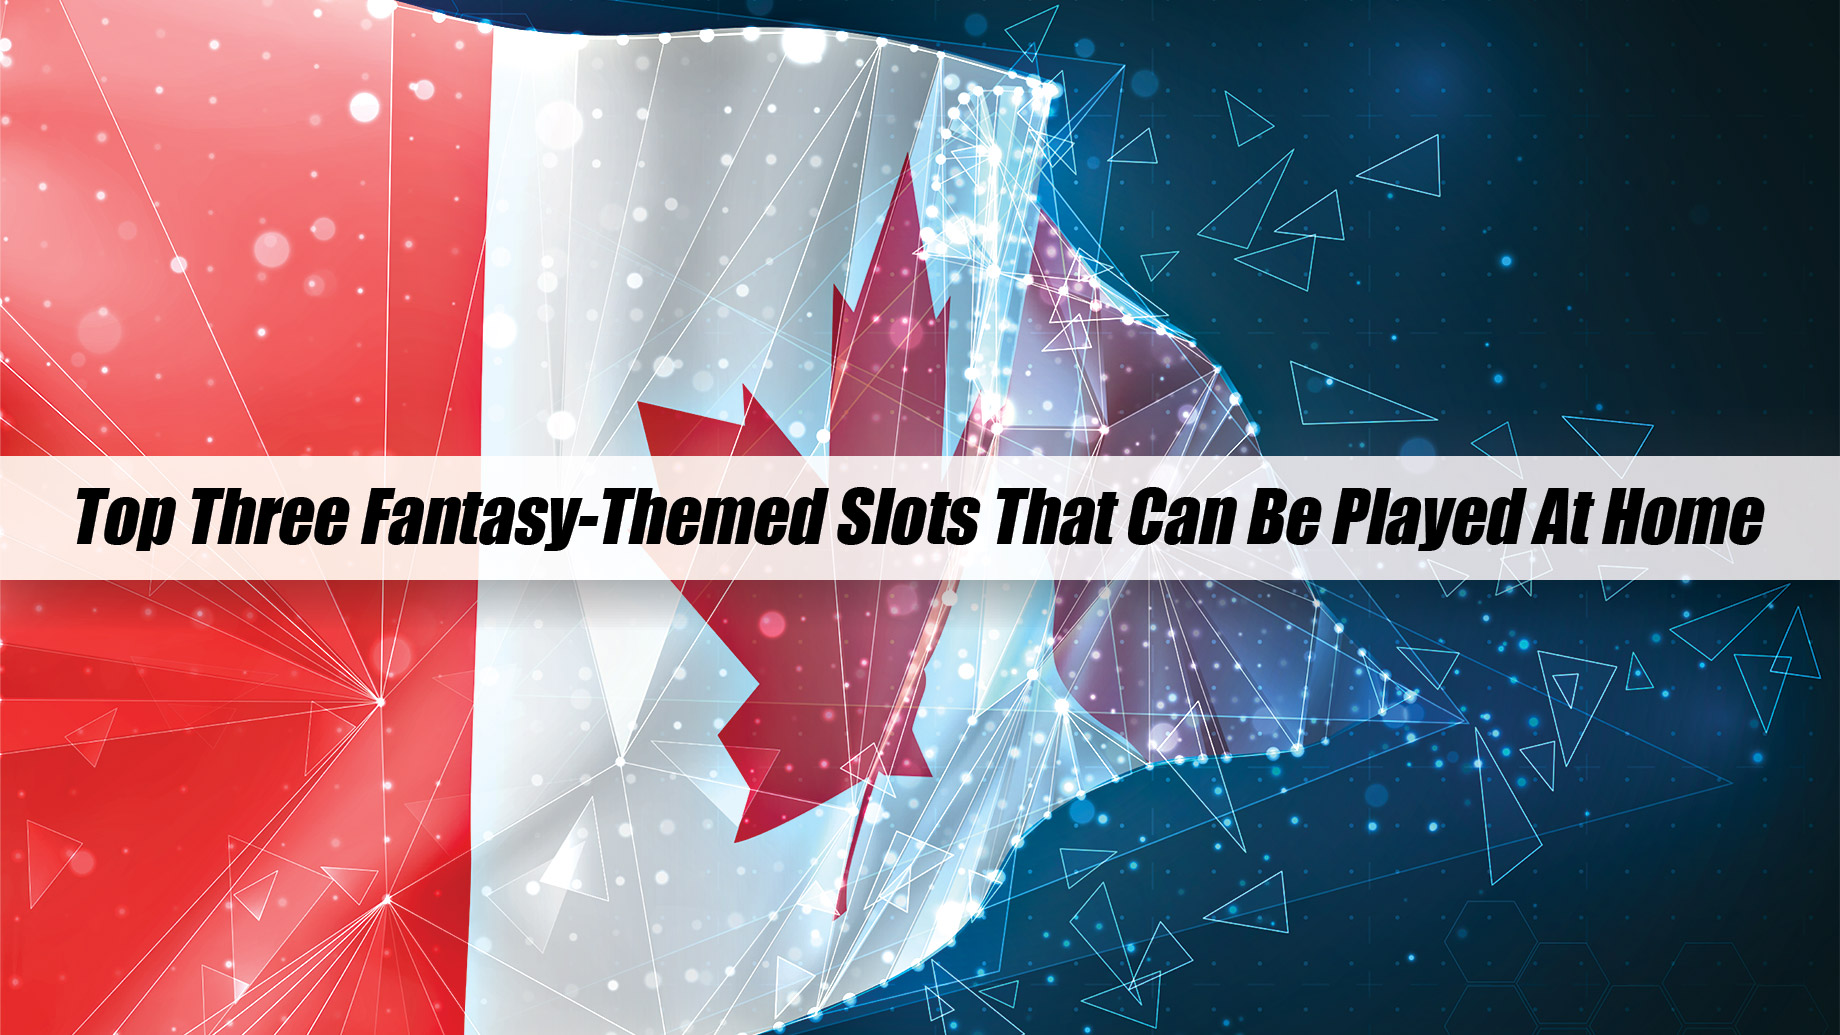 Top Three Fantasy-Themed Slots That Can Be Played At Home In Canada